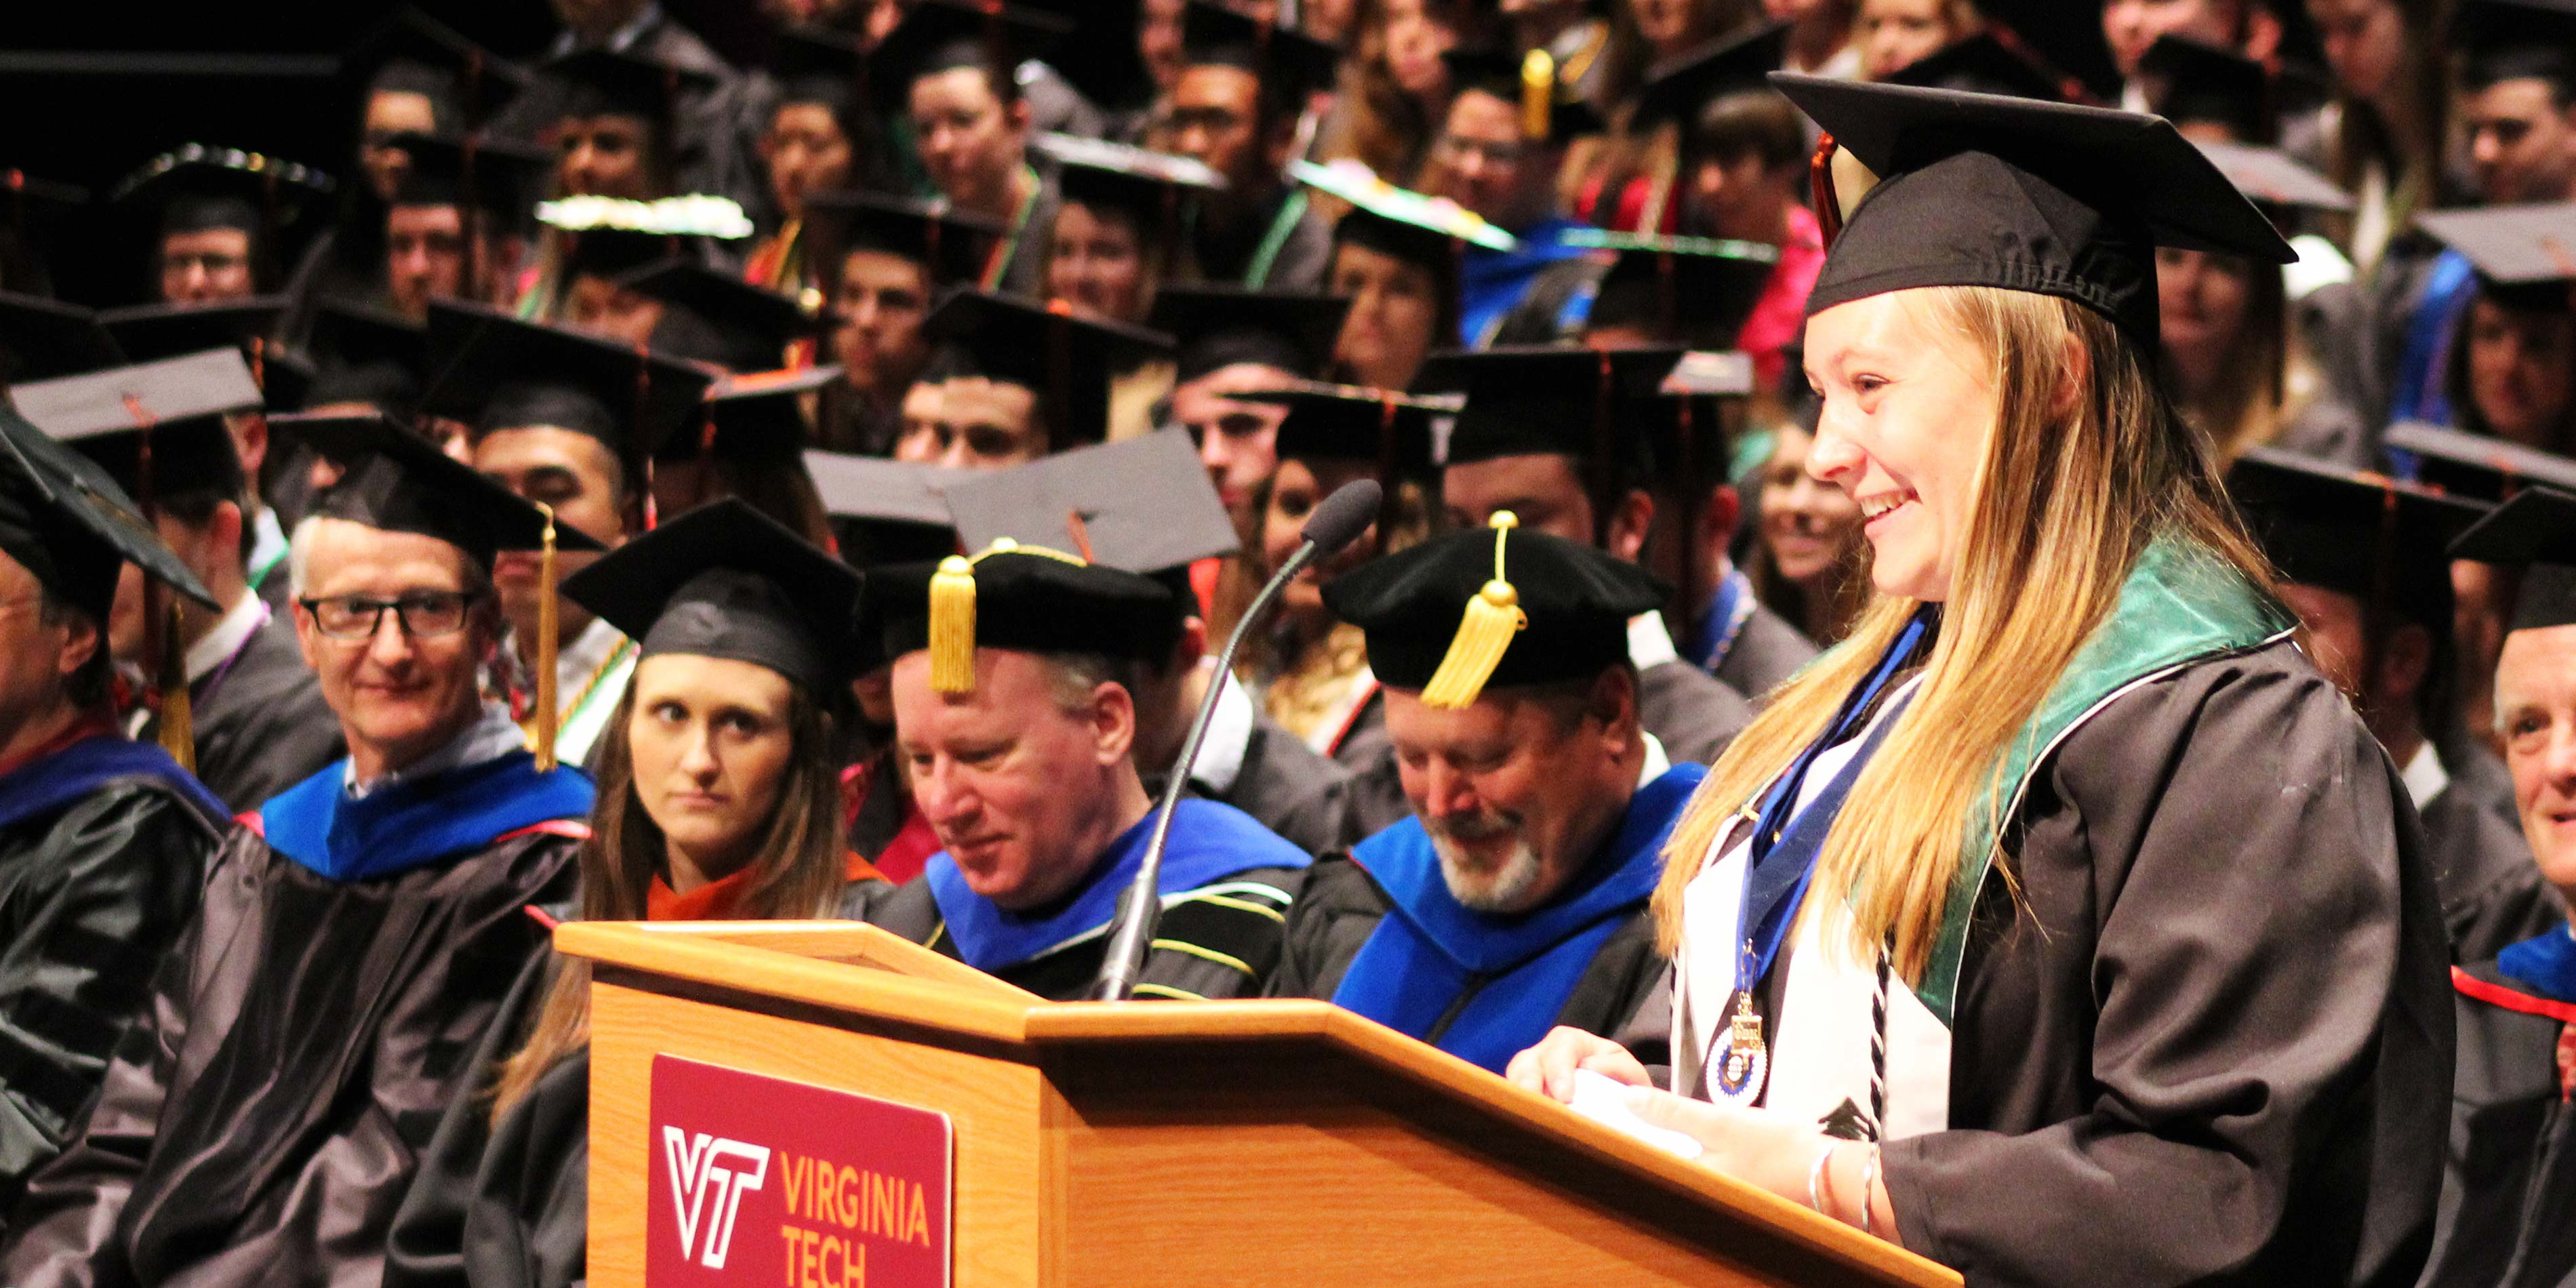 Vt Graduation 2020.Commencement College Of Natural Resources And Environment